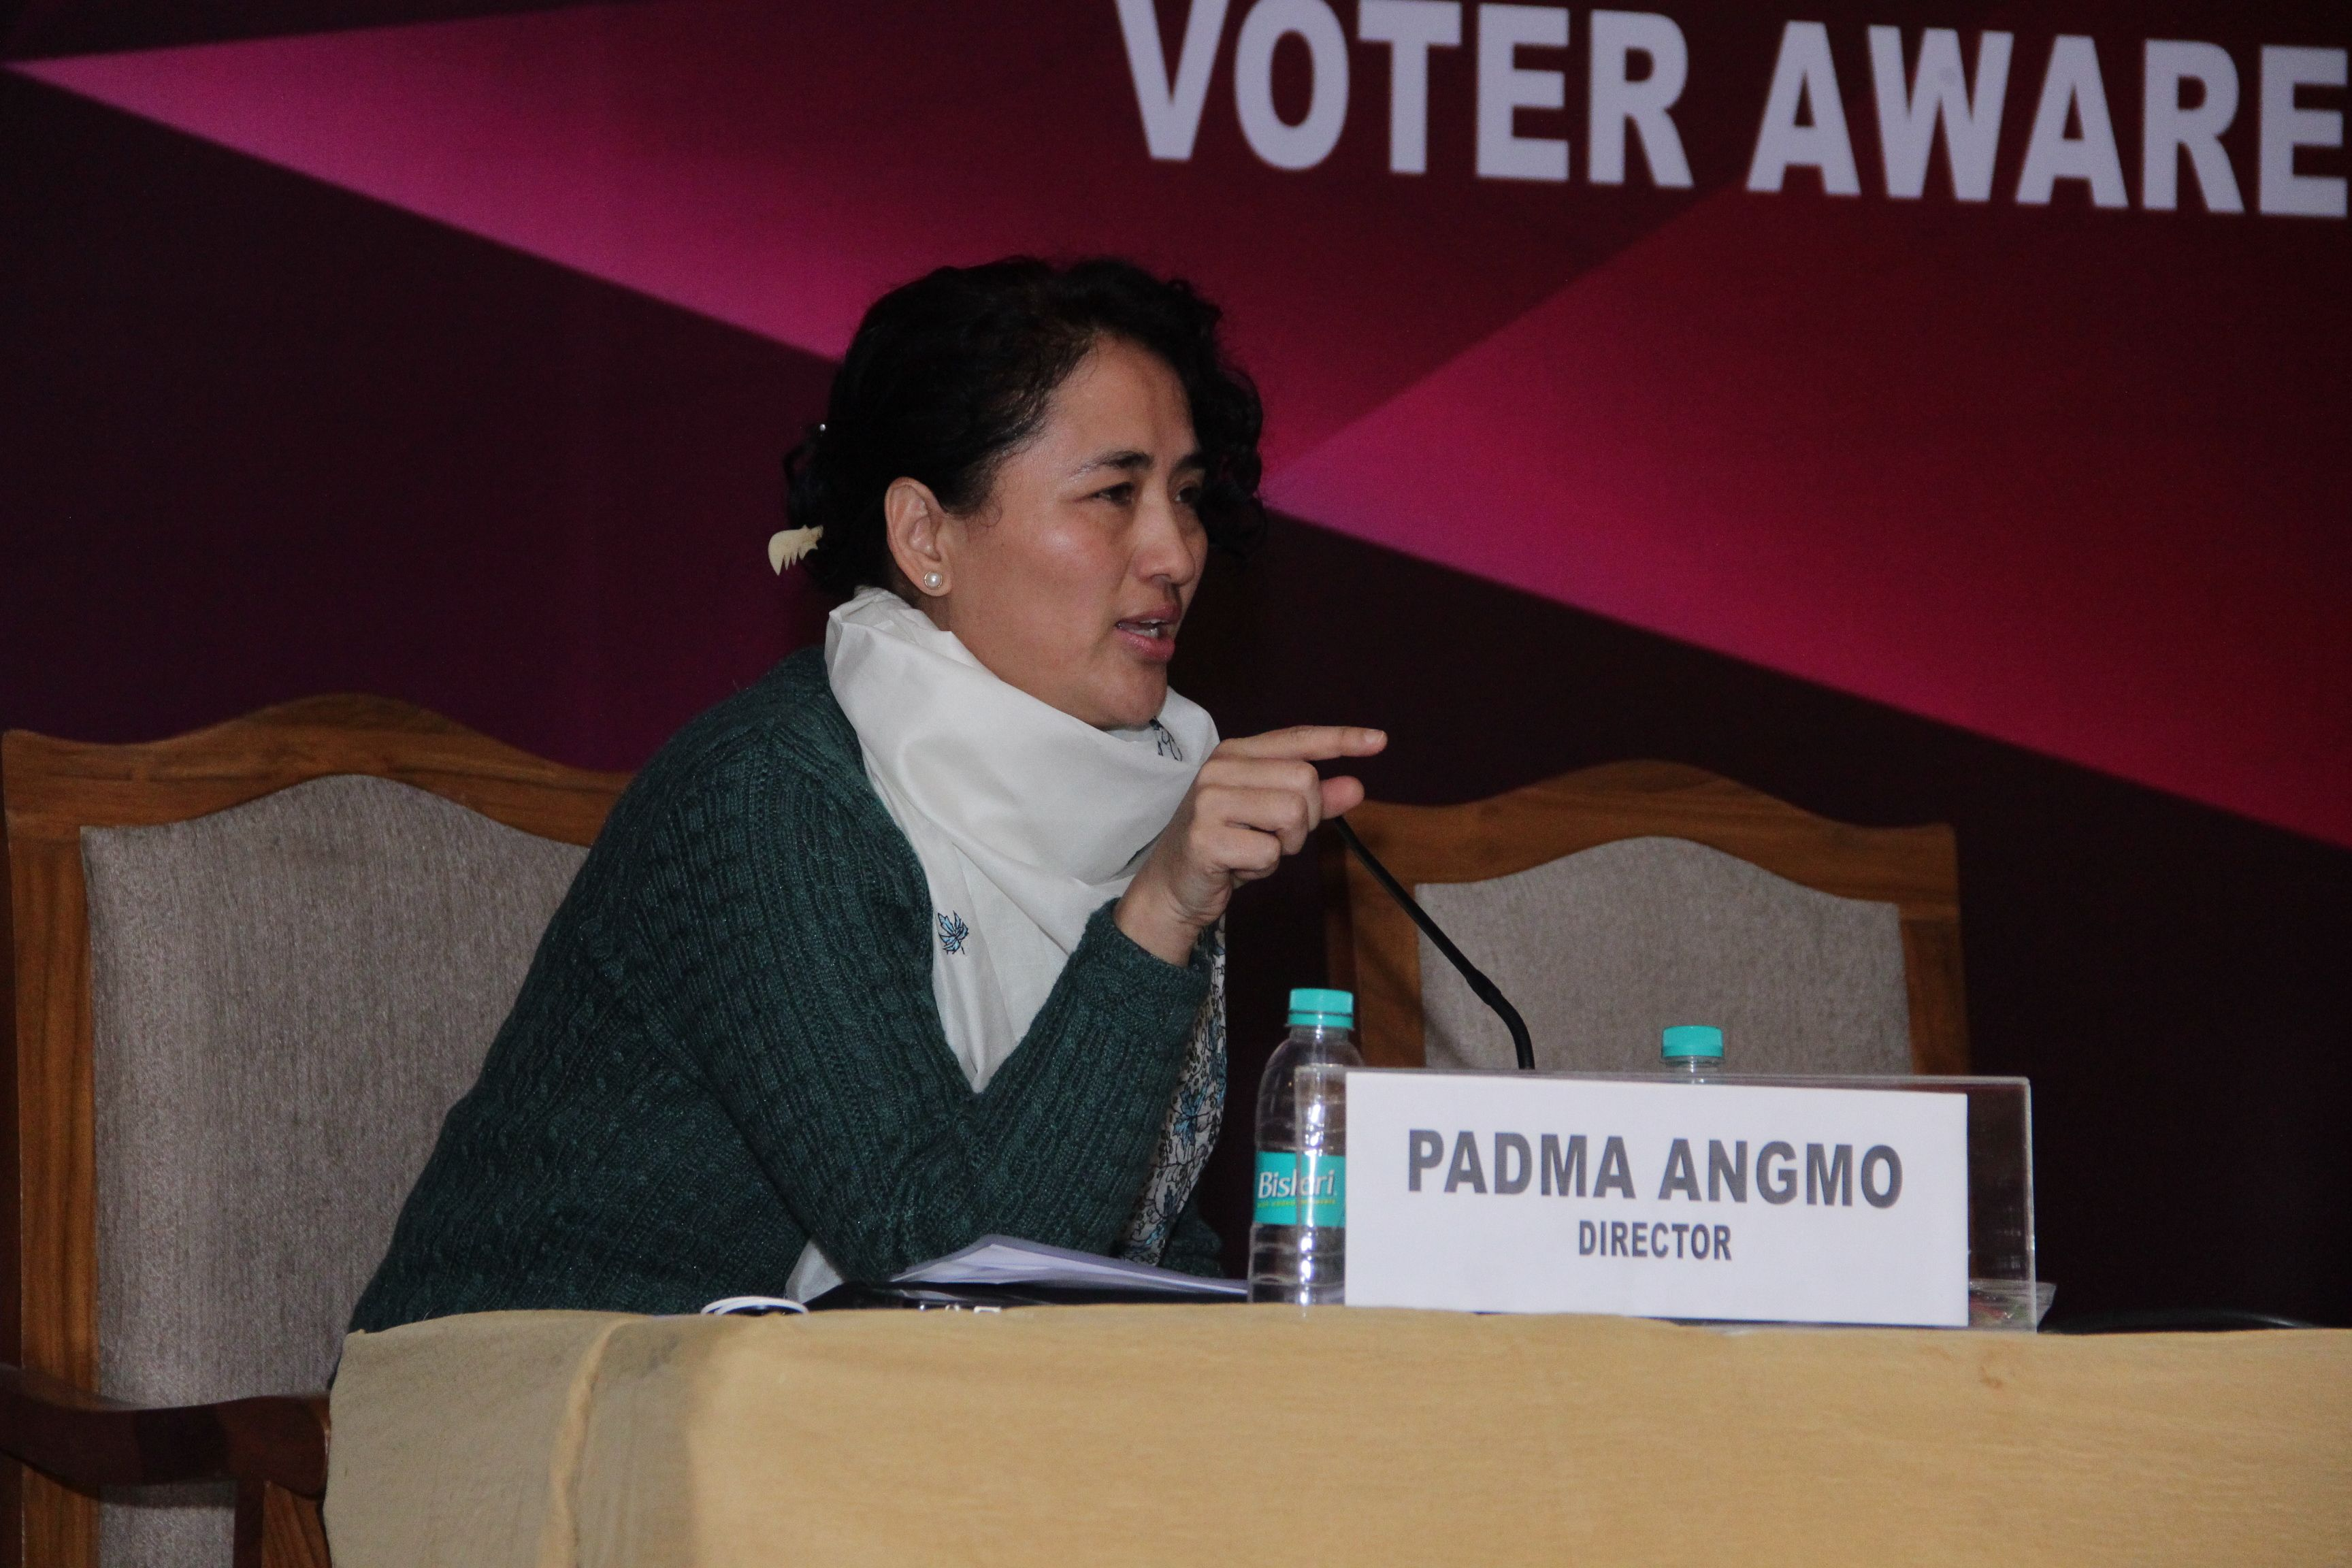 Ms Padma Angmo, Director interacting with the Nodal Officers